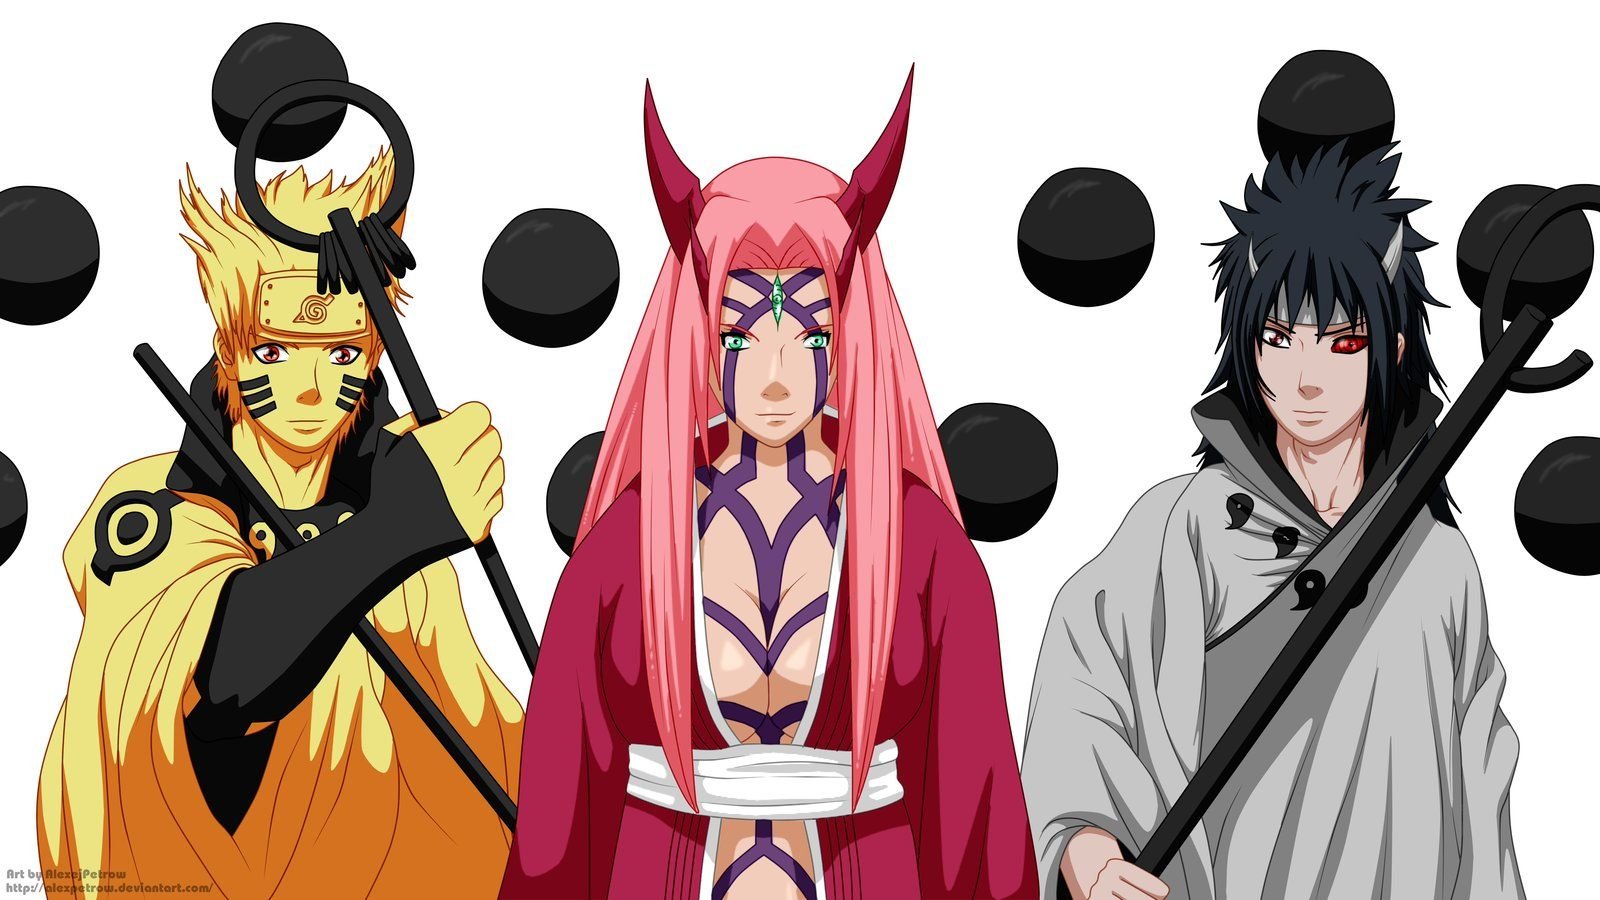 Team 7 (Naruto Sakura Sasuke) final form by AlexPetrow.deviantart ...